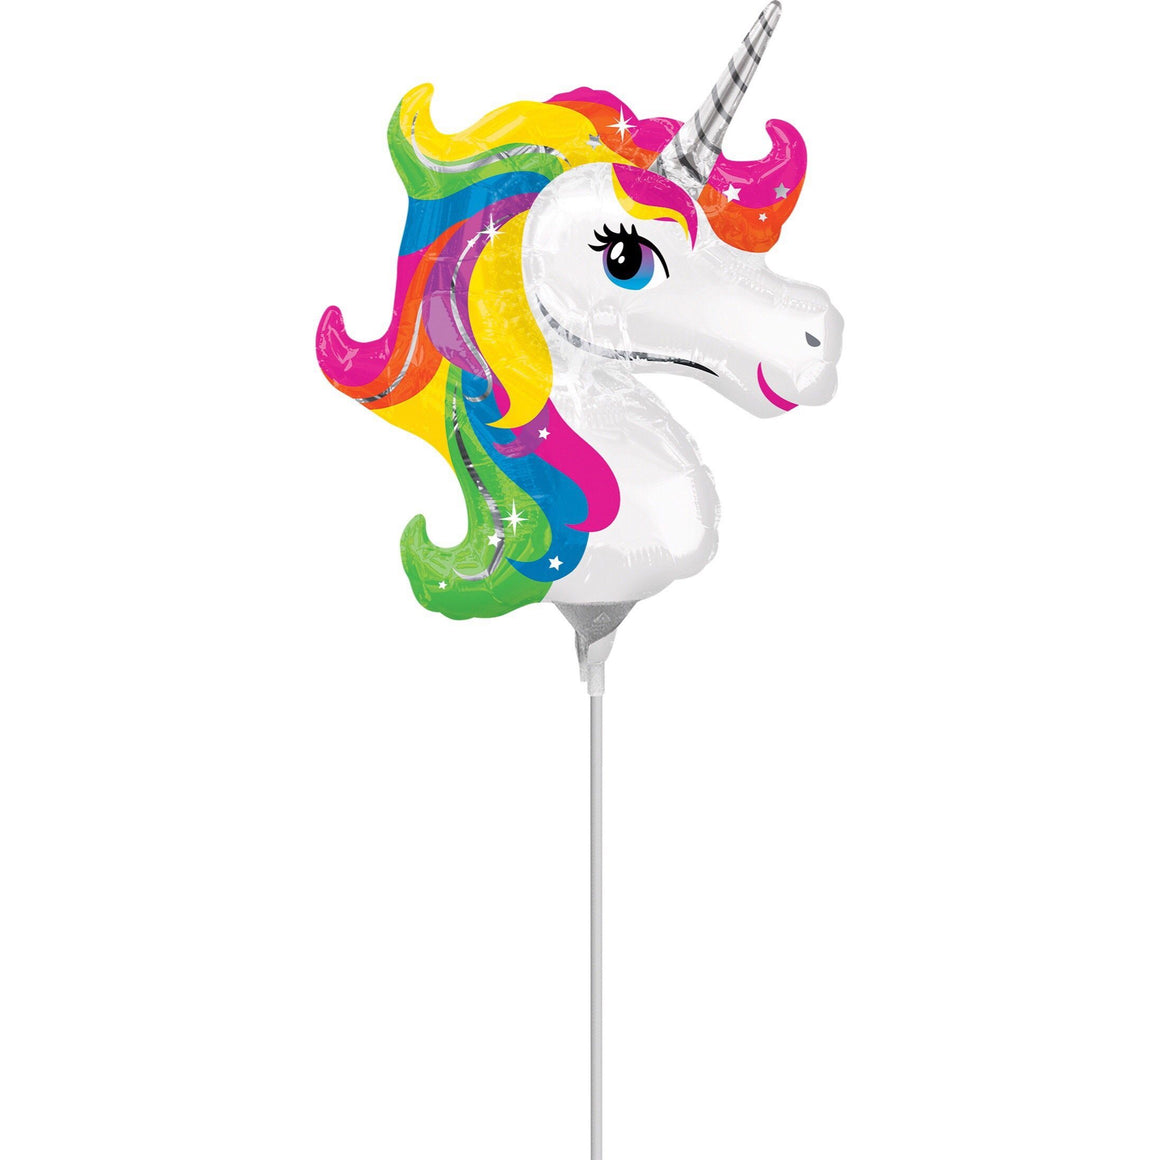 BALLOONS - UNICORN WAND BRITE (Pre-Filled - Pick-Up Only), Balloons, Anagram - Bon + Co. Party Studio